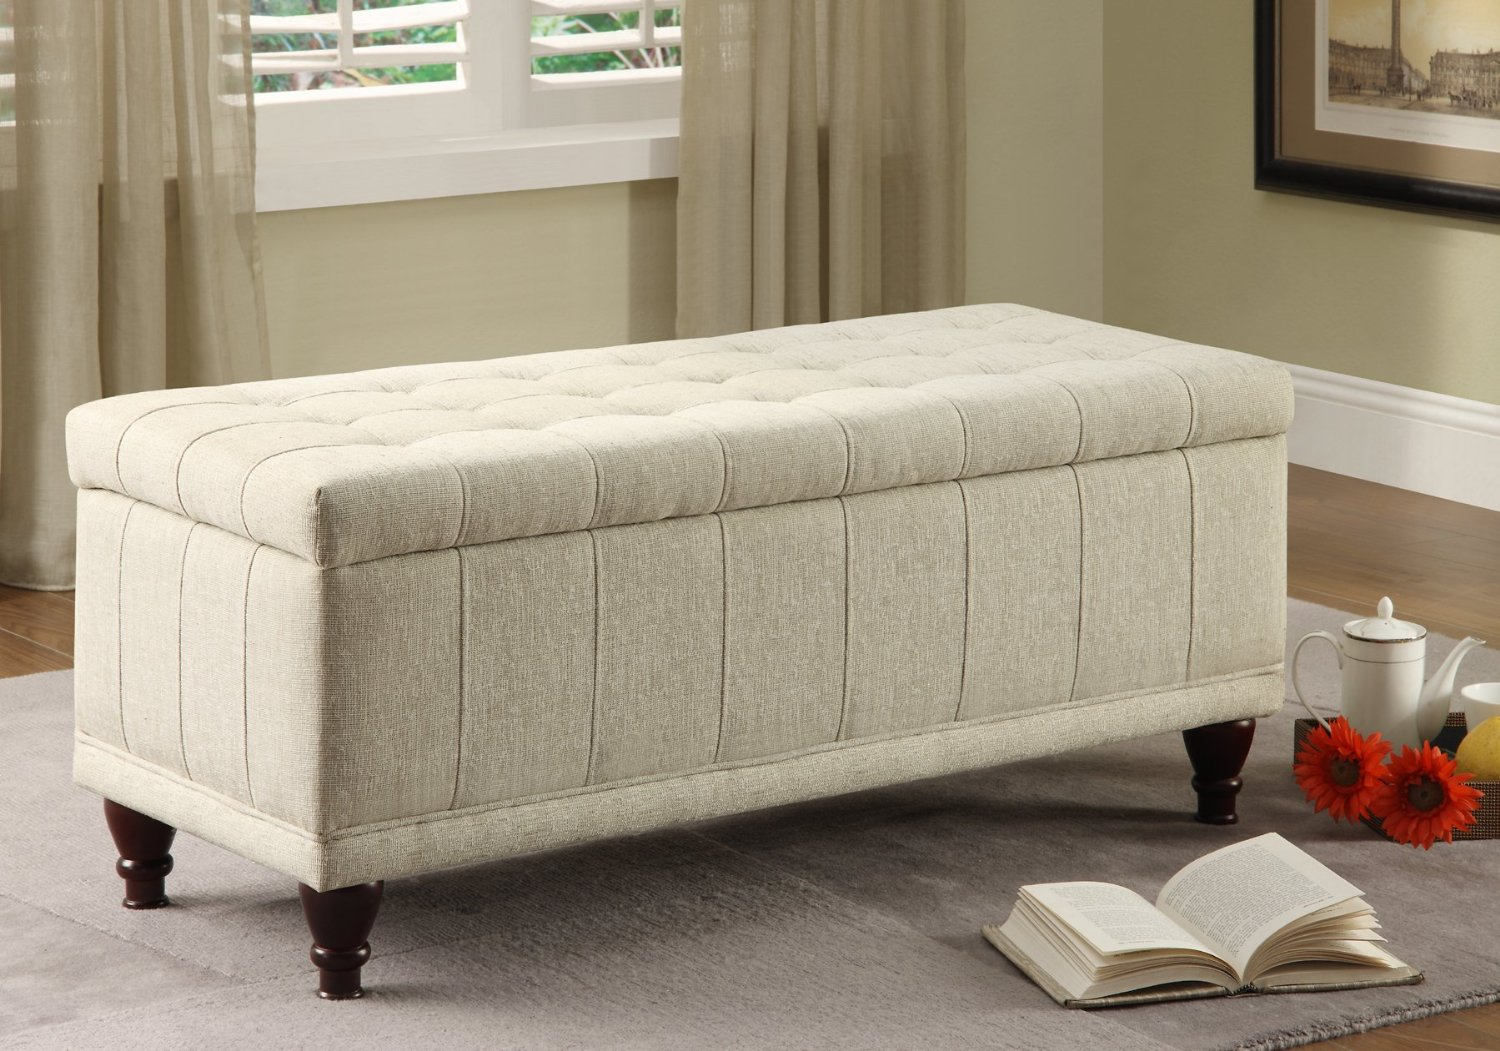 Total Fab Bedroom Storage Bench Seat